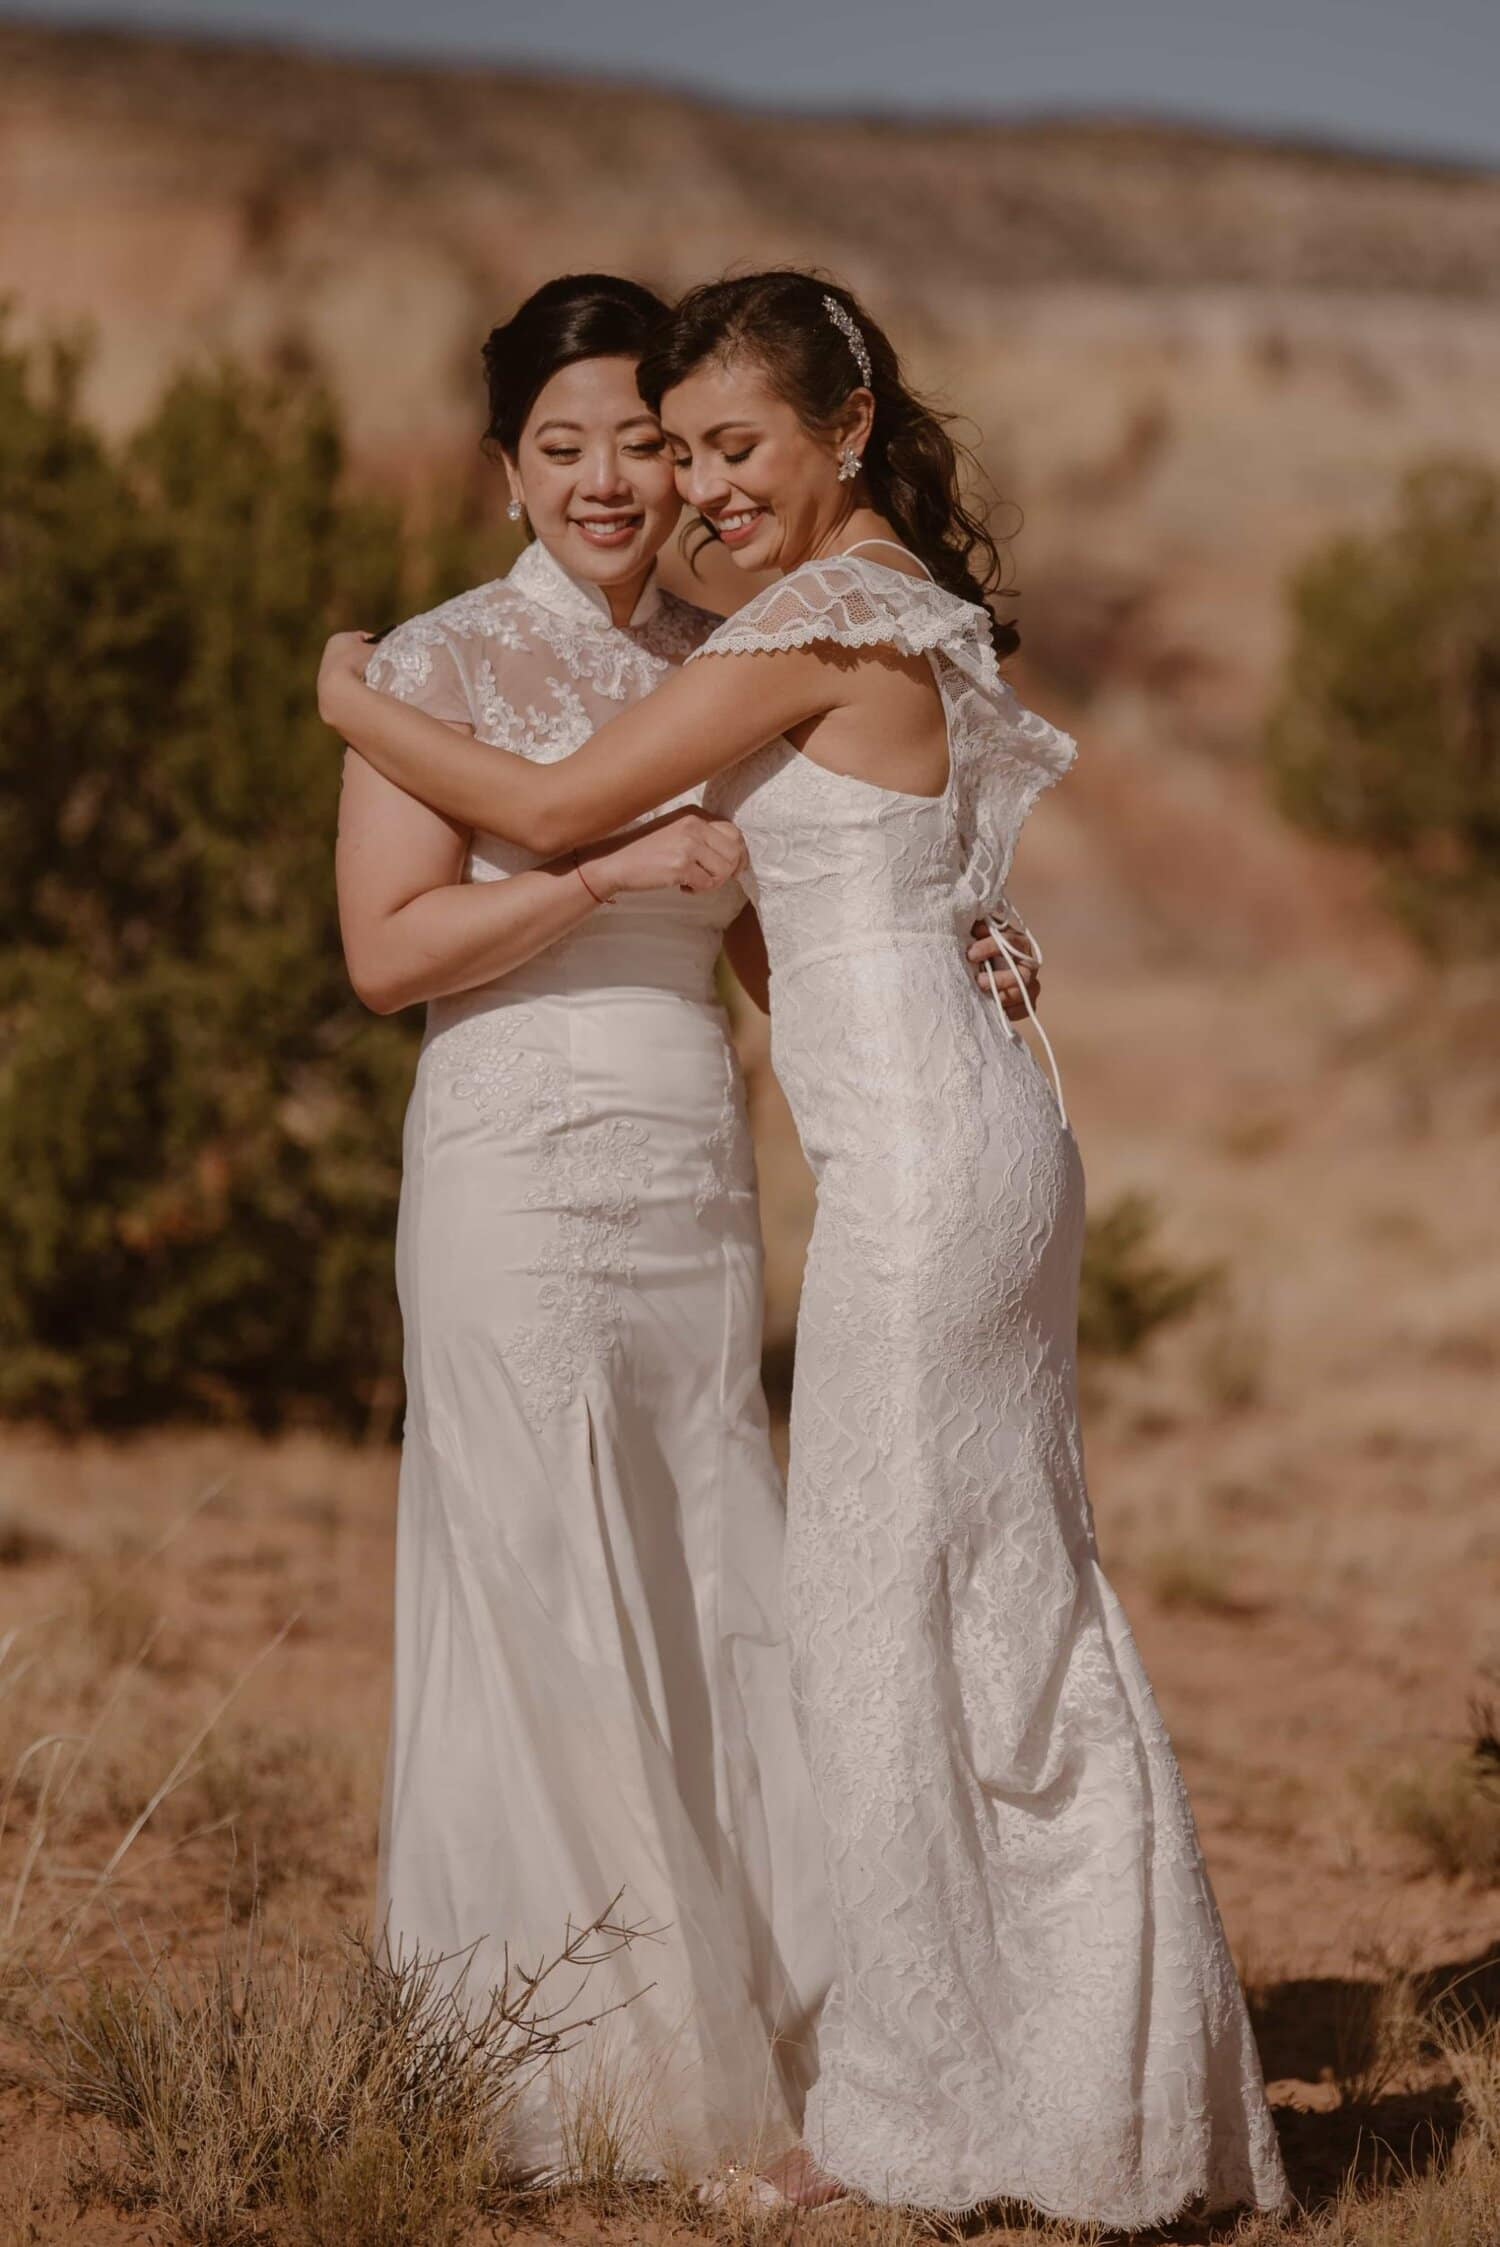 Two brides embrace on their wedding day.